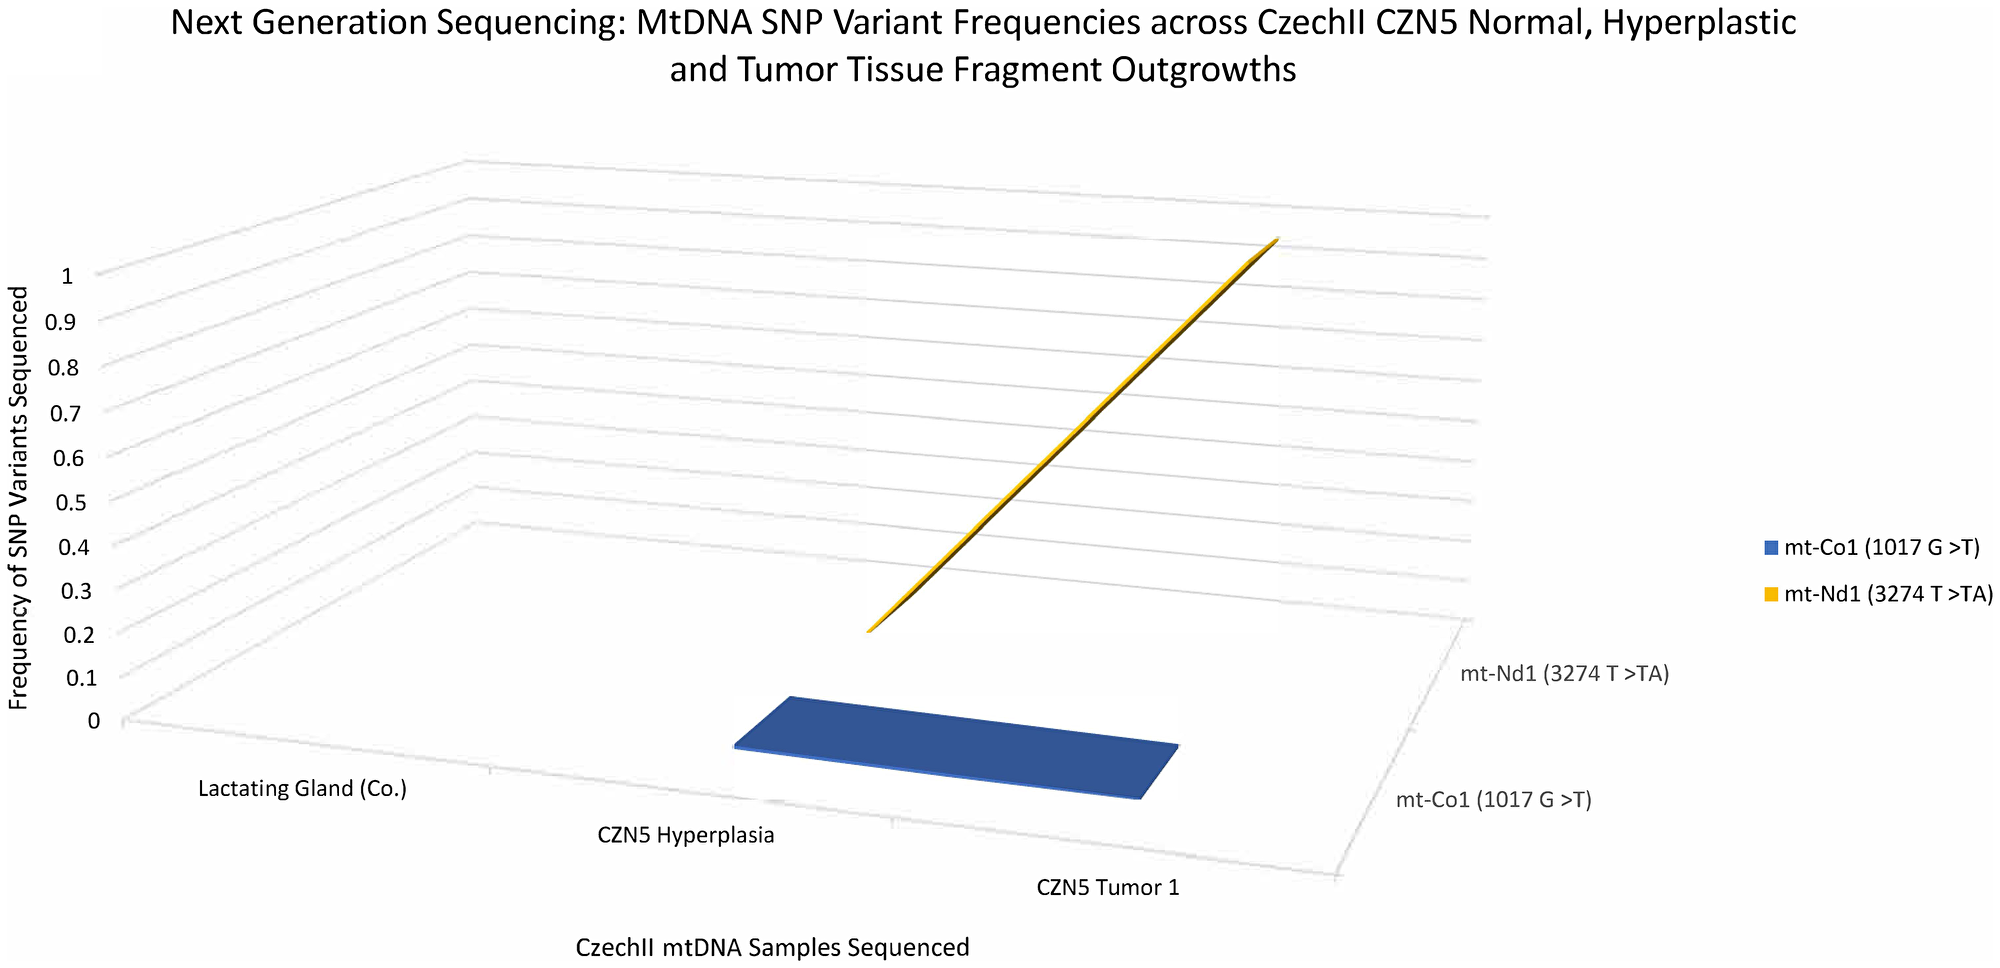 CzechII mammary CZN5 tumor 1 mtDNA SNP variant calling via Next Generation sequencing.